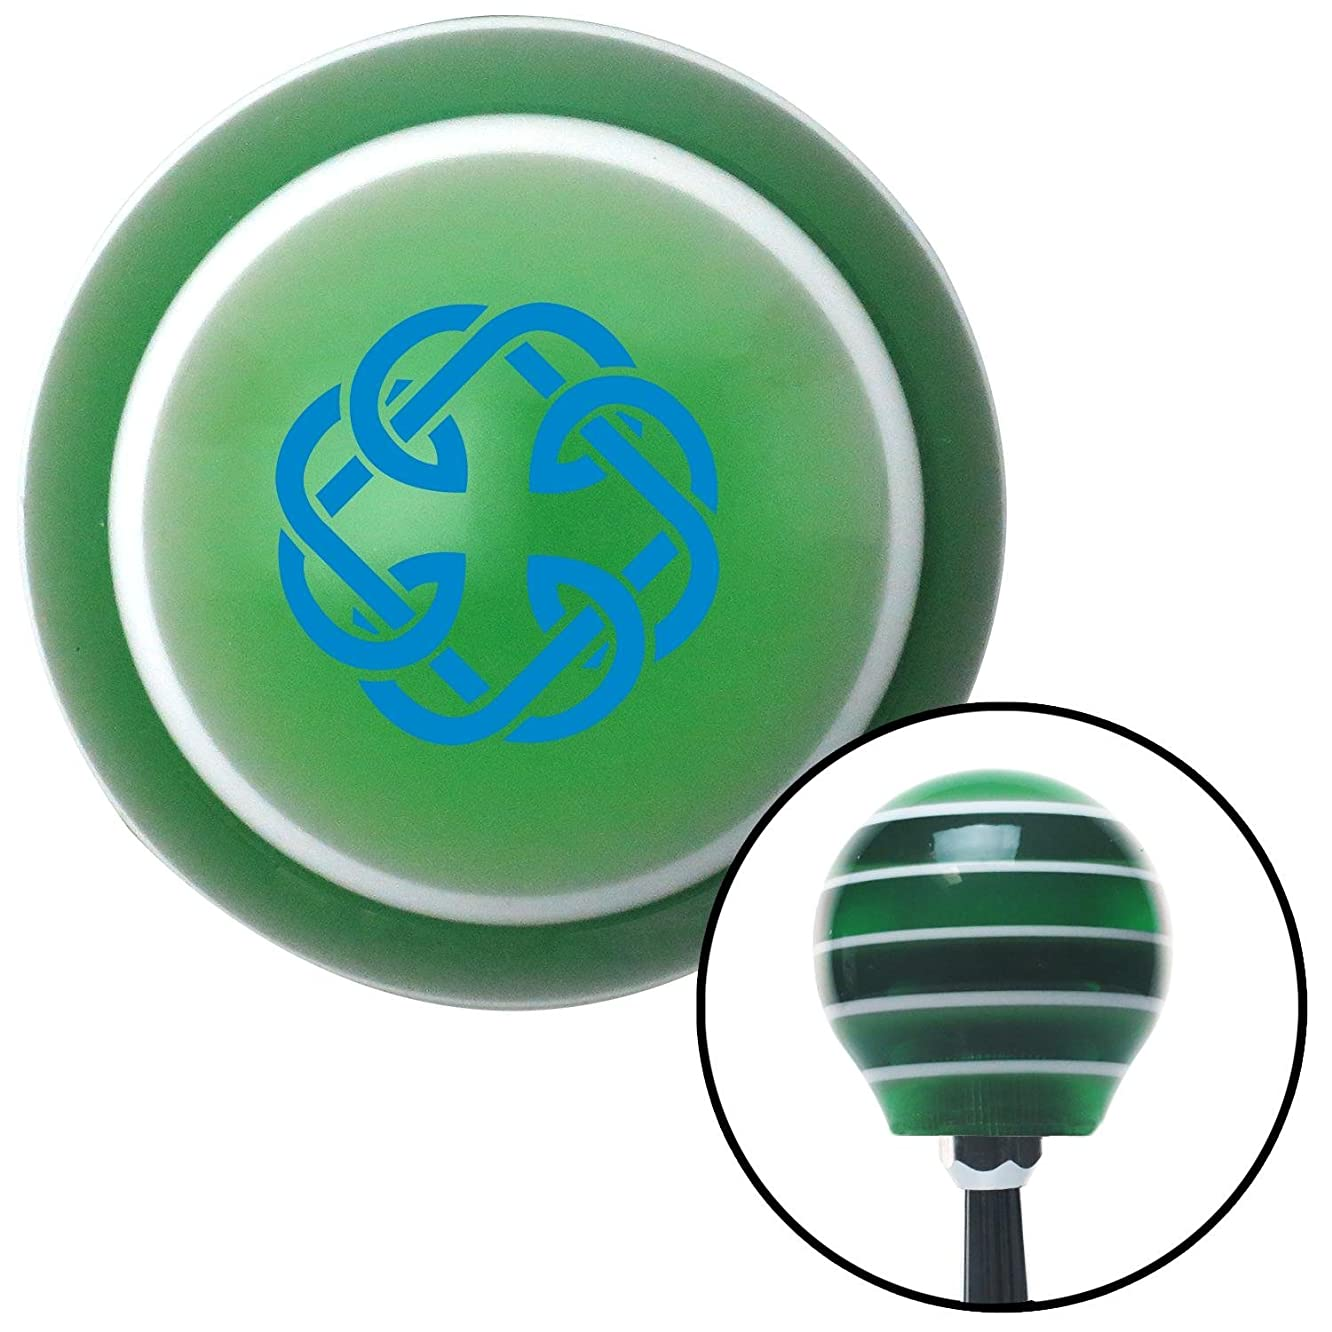 American Shifter 128534 Green Stripe Shift Knob with M16 x 1.5 Insert (Blue Celtic Father Daughter Symbol)